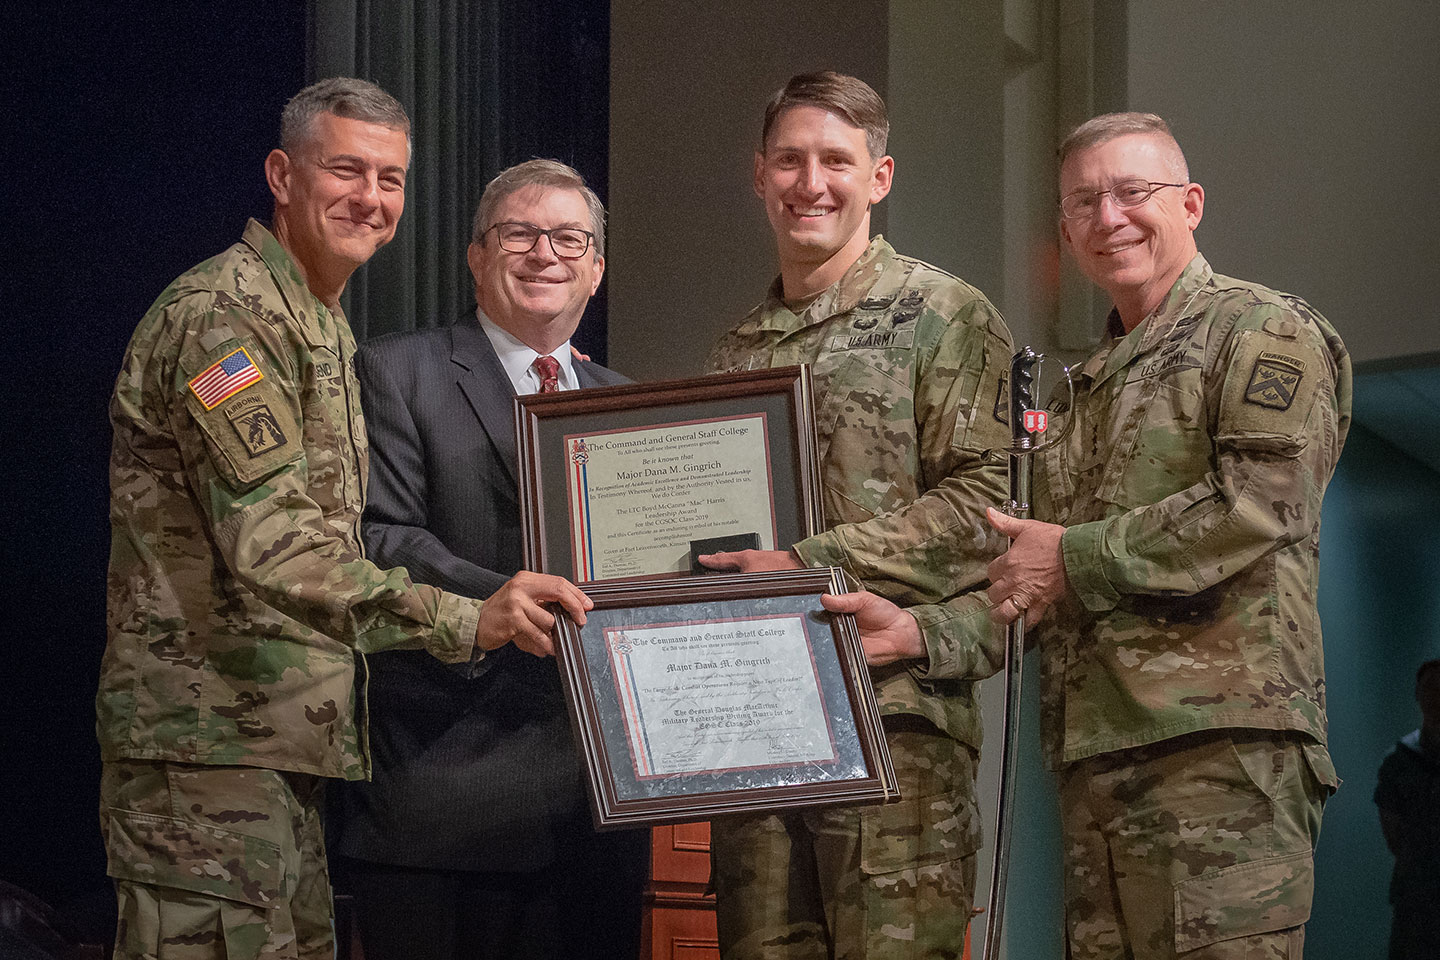 Major Dana M. Gingrich is congratulated by CGSC Commandant Lt. Gen. Michael Lundy (right), Gen. Stephen J. Townsend, Commander TRADOC, and Michael D. Hockley, Civilian Aide to the Secretary of the Army for Kansas and Chairman of the CGSC Foundation upon being named the General George C. Marshall awardee, the top U.S. graduate for the Command and General Staff Officers Class of 2019. Gingrich also received the General George S. Patton Jr. Master Tactician Award, General Douglas MacArthur Military Leadership Writing Award, and the Lt. Col. Boyd McCanna Harris Leadership Award during graduation ceremonies June 14 at Fort Leavenworth's Lewis and Clark Center. (Photo by Dan Neal)